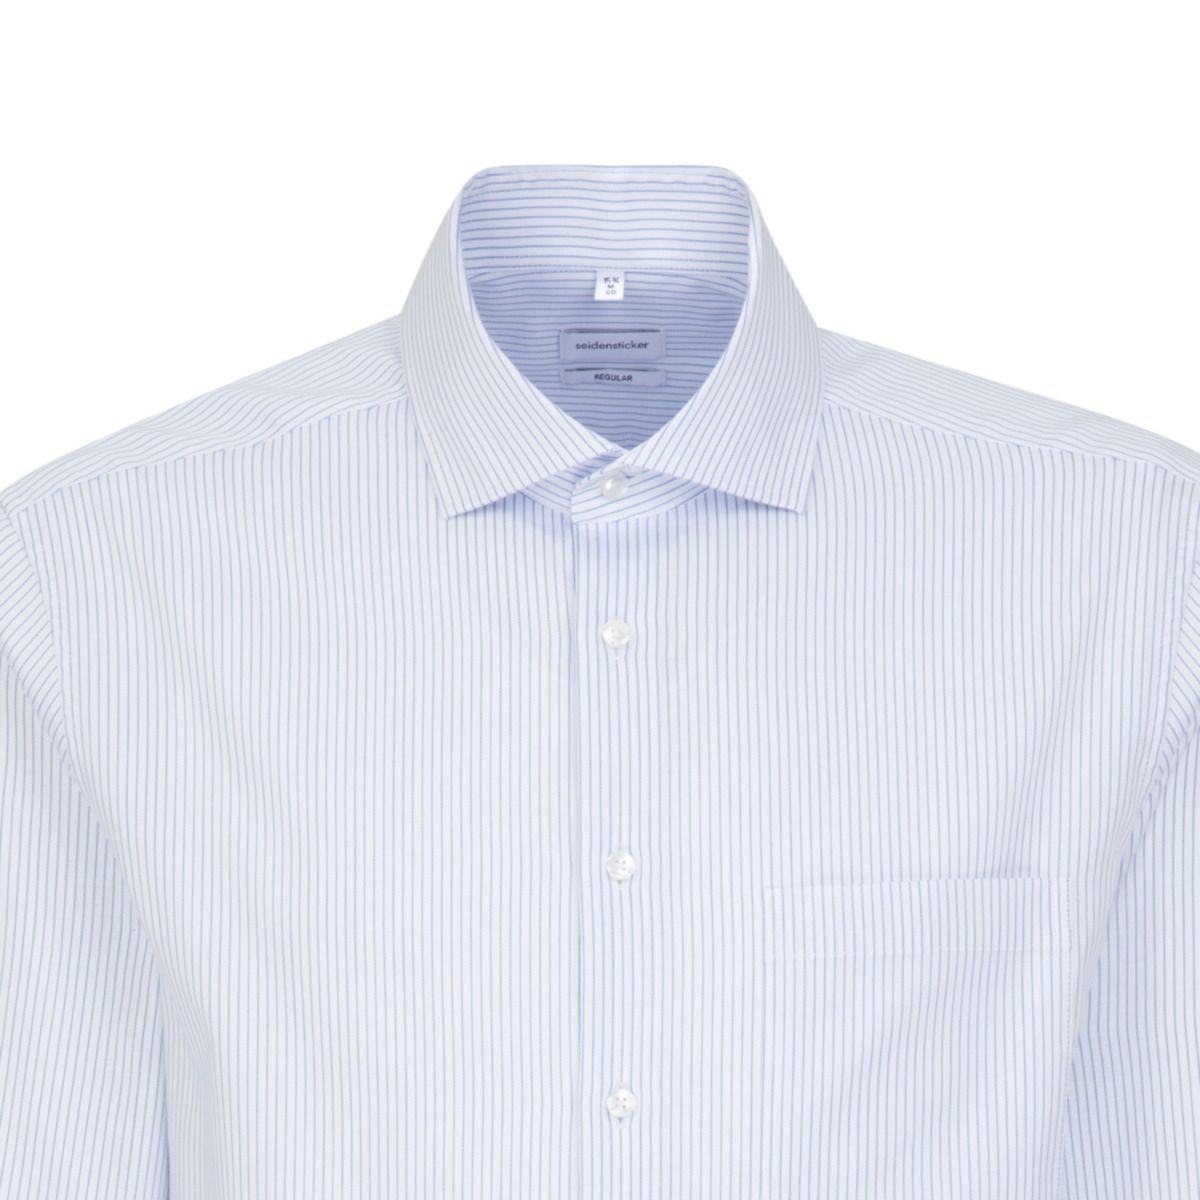 Chemise droite fines rayures bleues